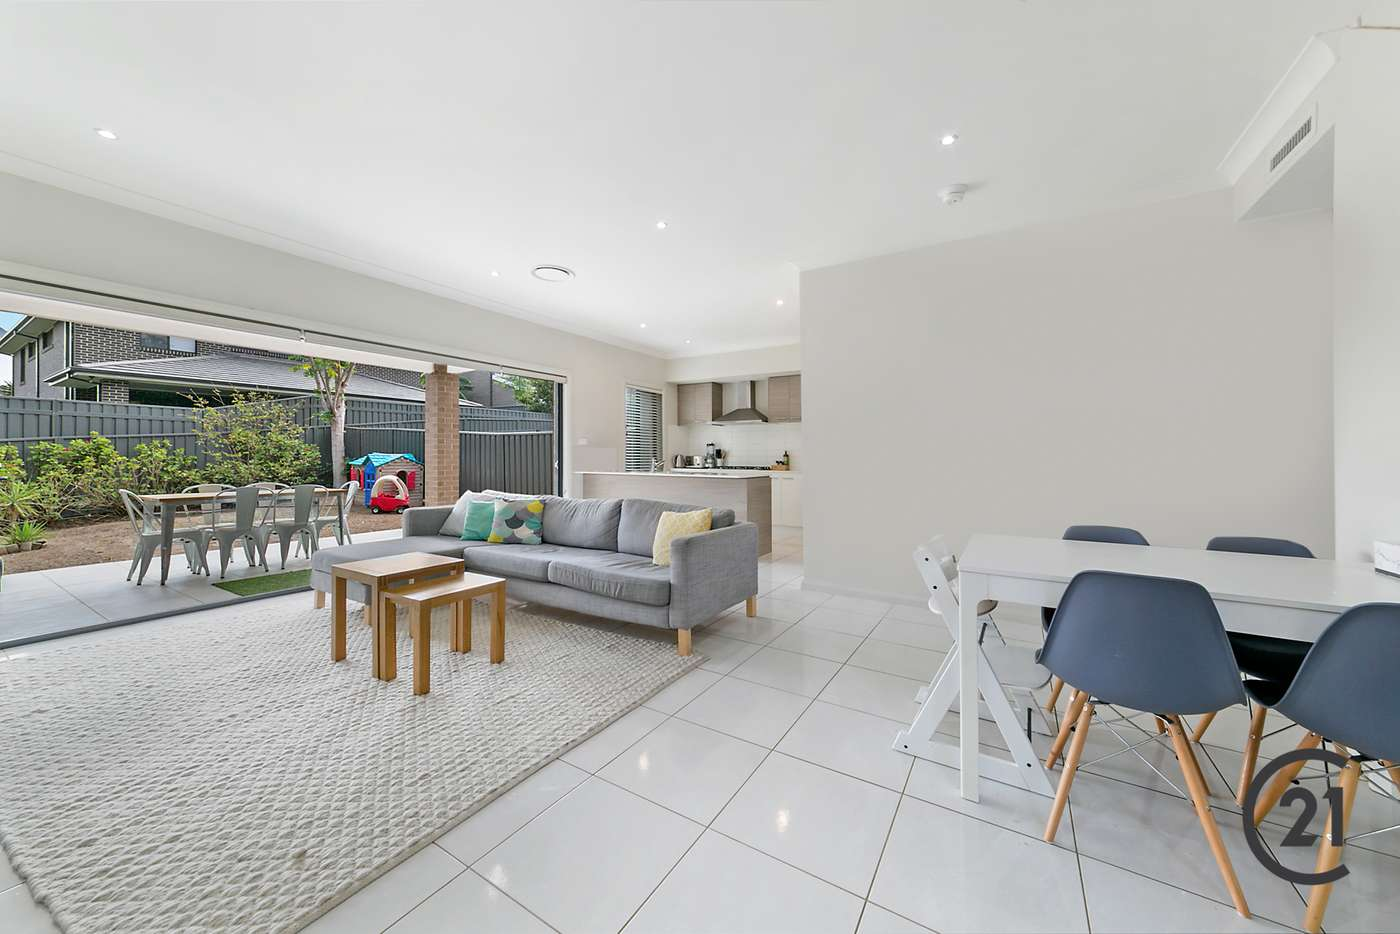 Fifth view of Homely house listing, 1 Gabi Glade, Kellyville Ridge NSW 2155